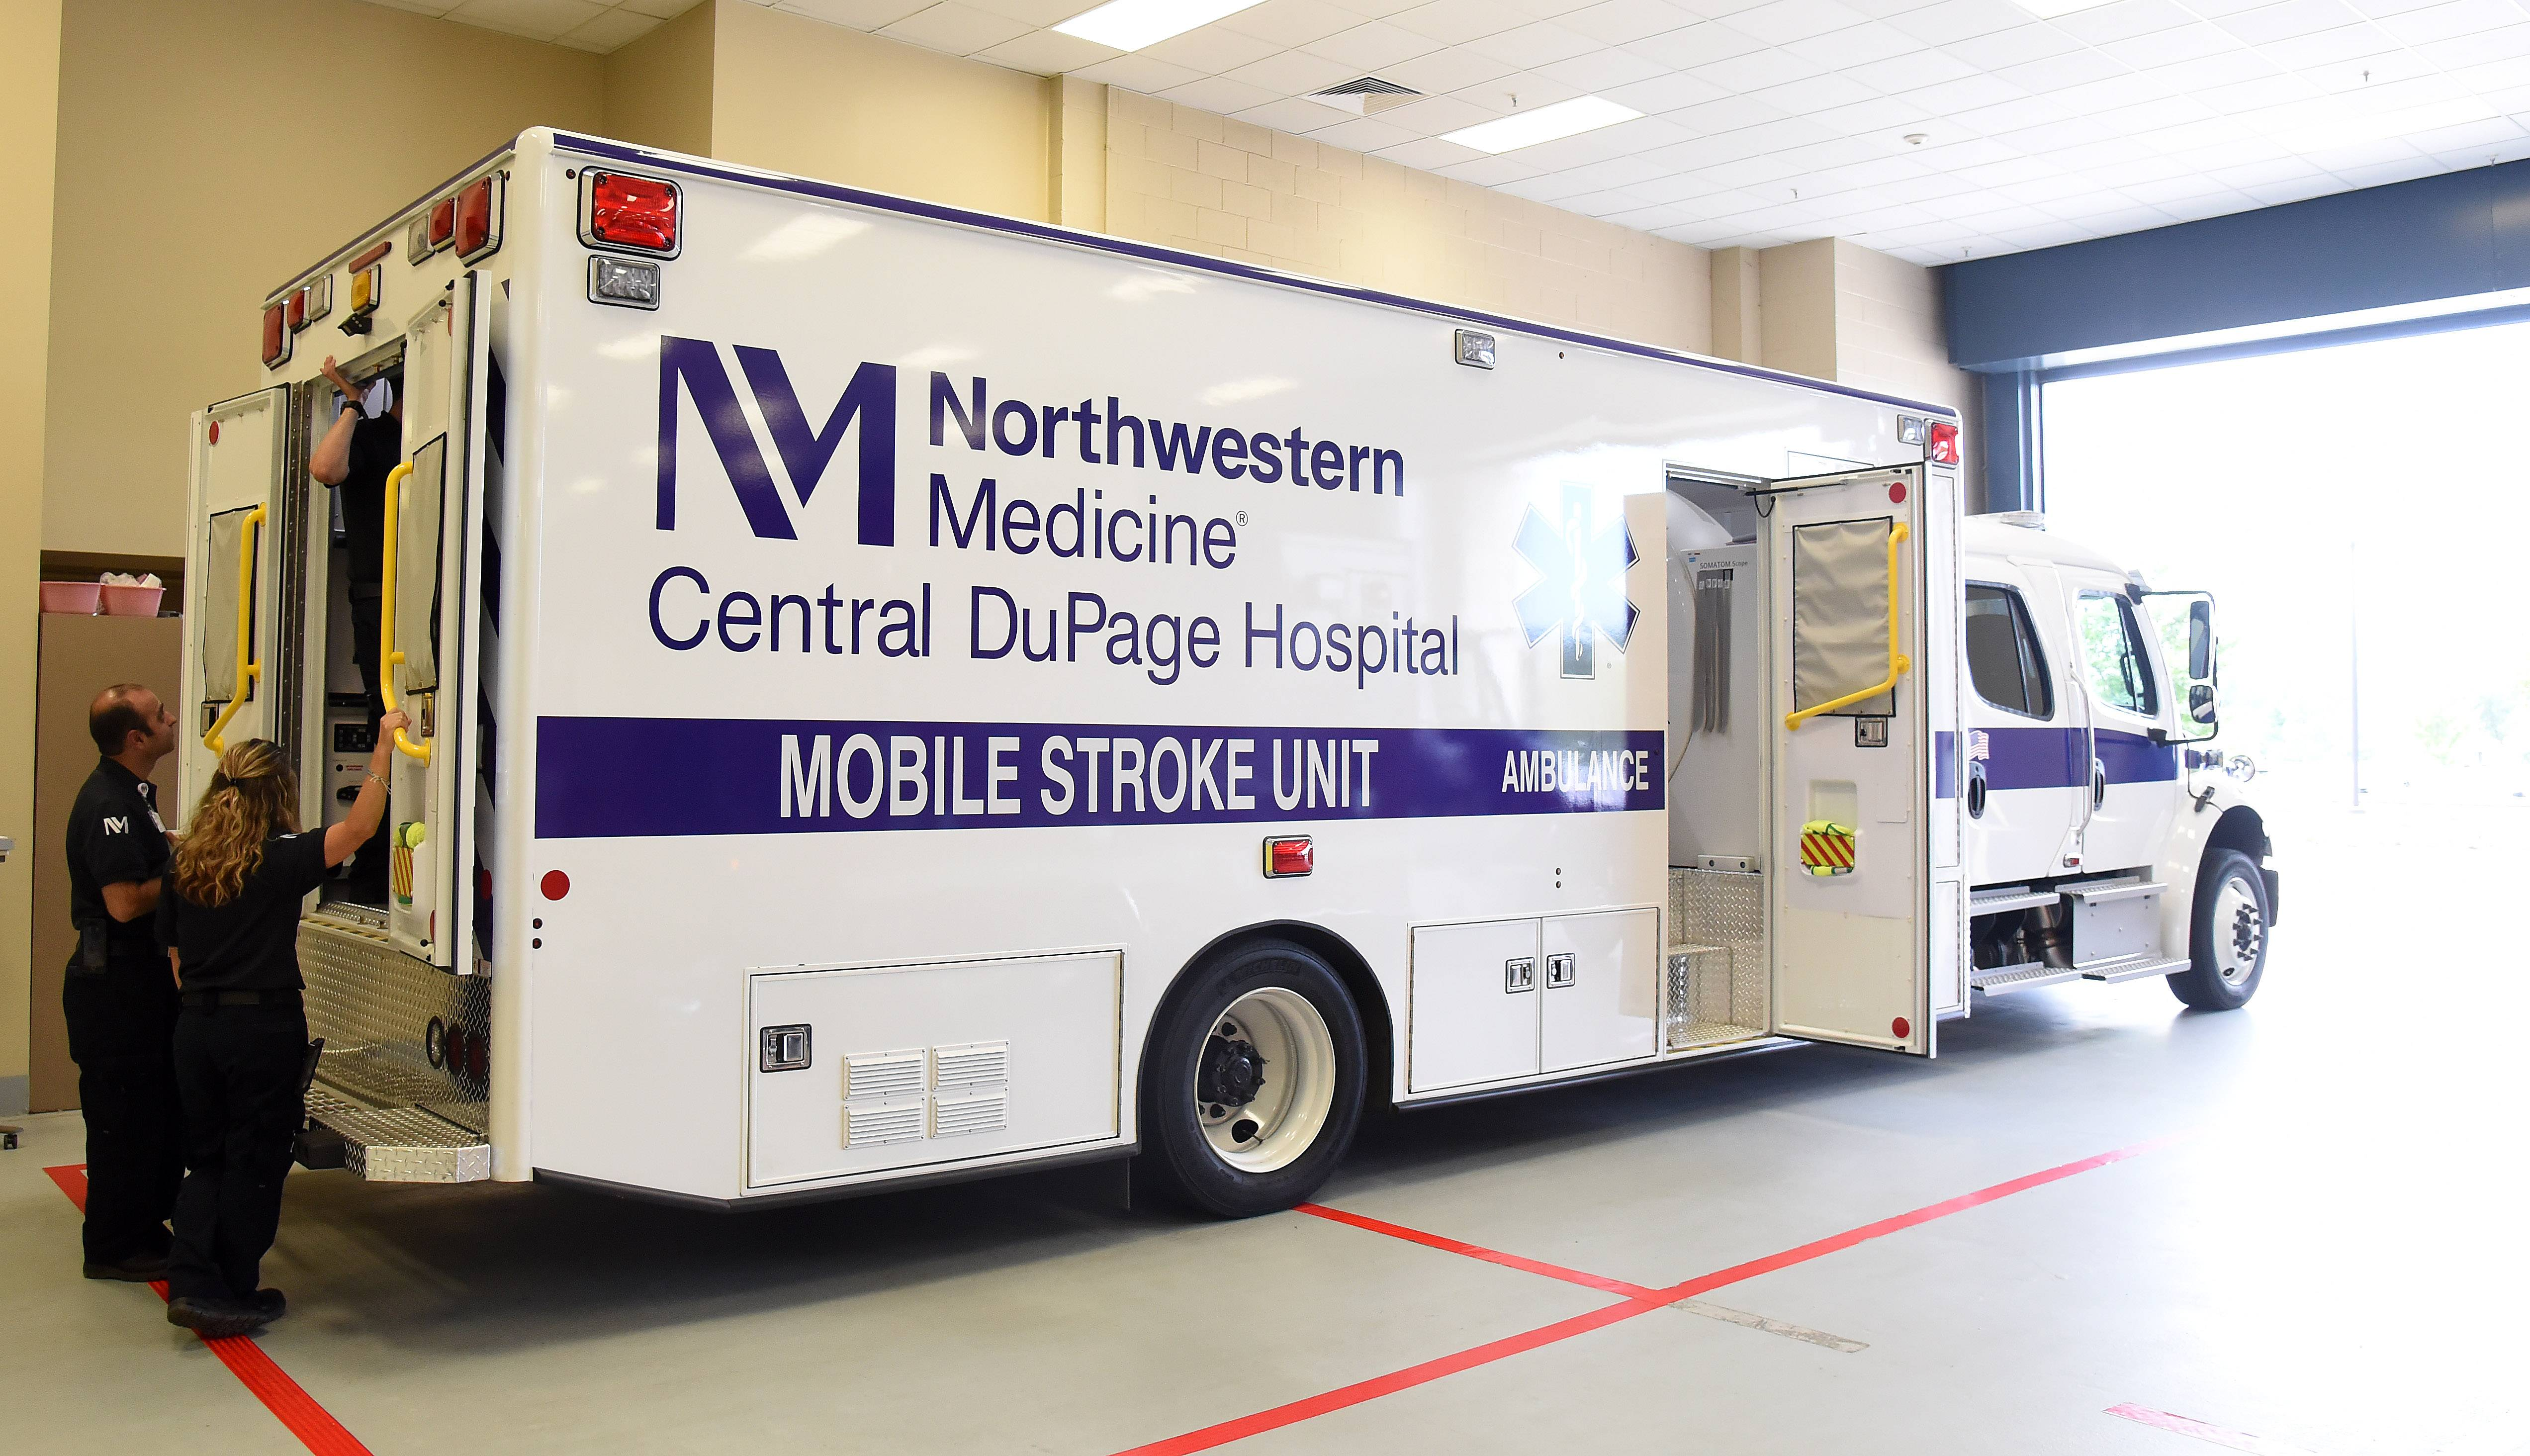 The Northwestern Medicine Central DuPage Hospital mobile stroke unit has been in action since January.